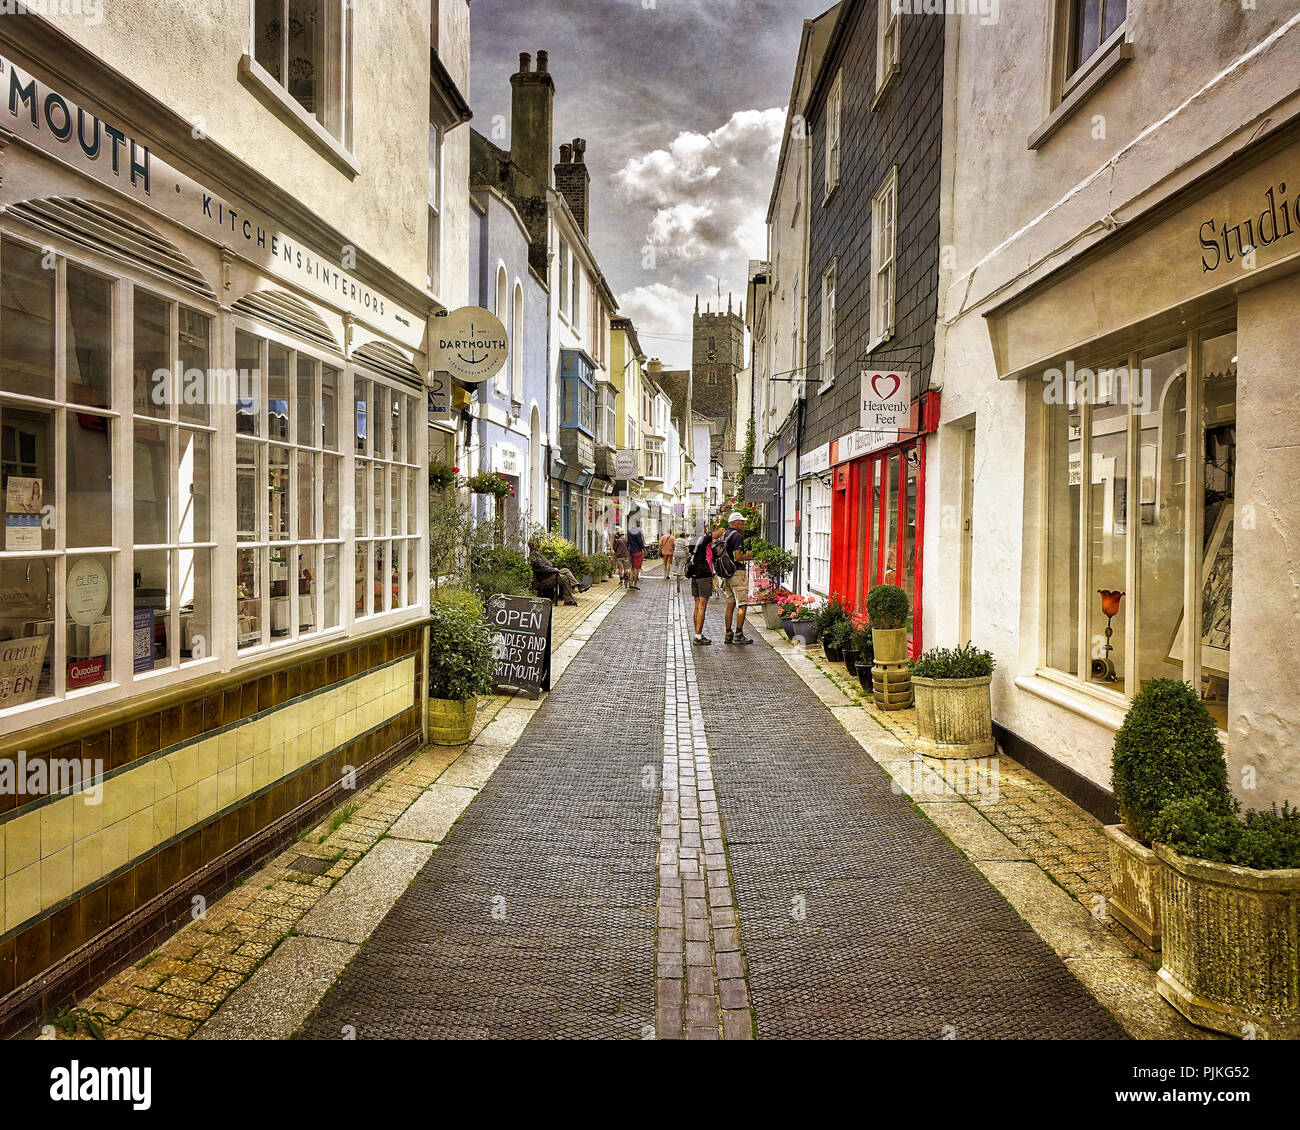 GB - DEVON: Foss Street in the town centre of  Dartmouth - Stock Image